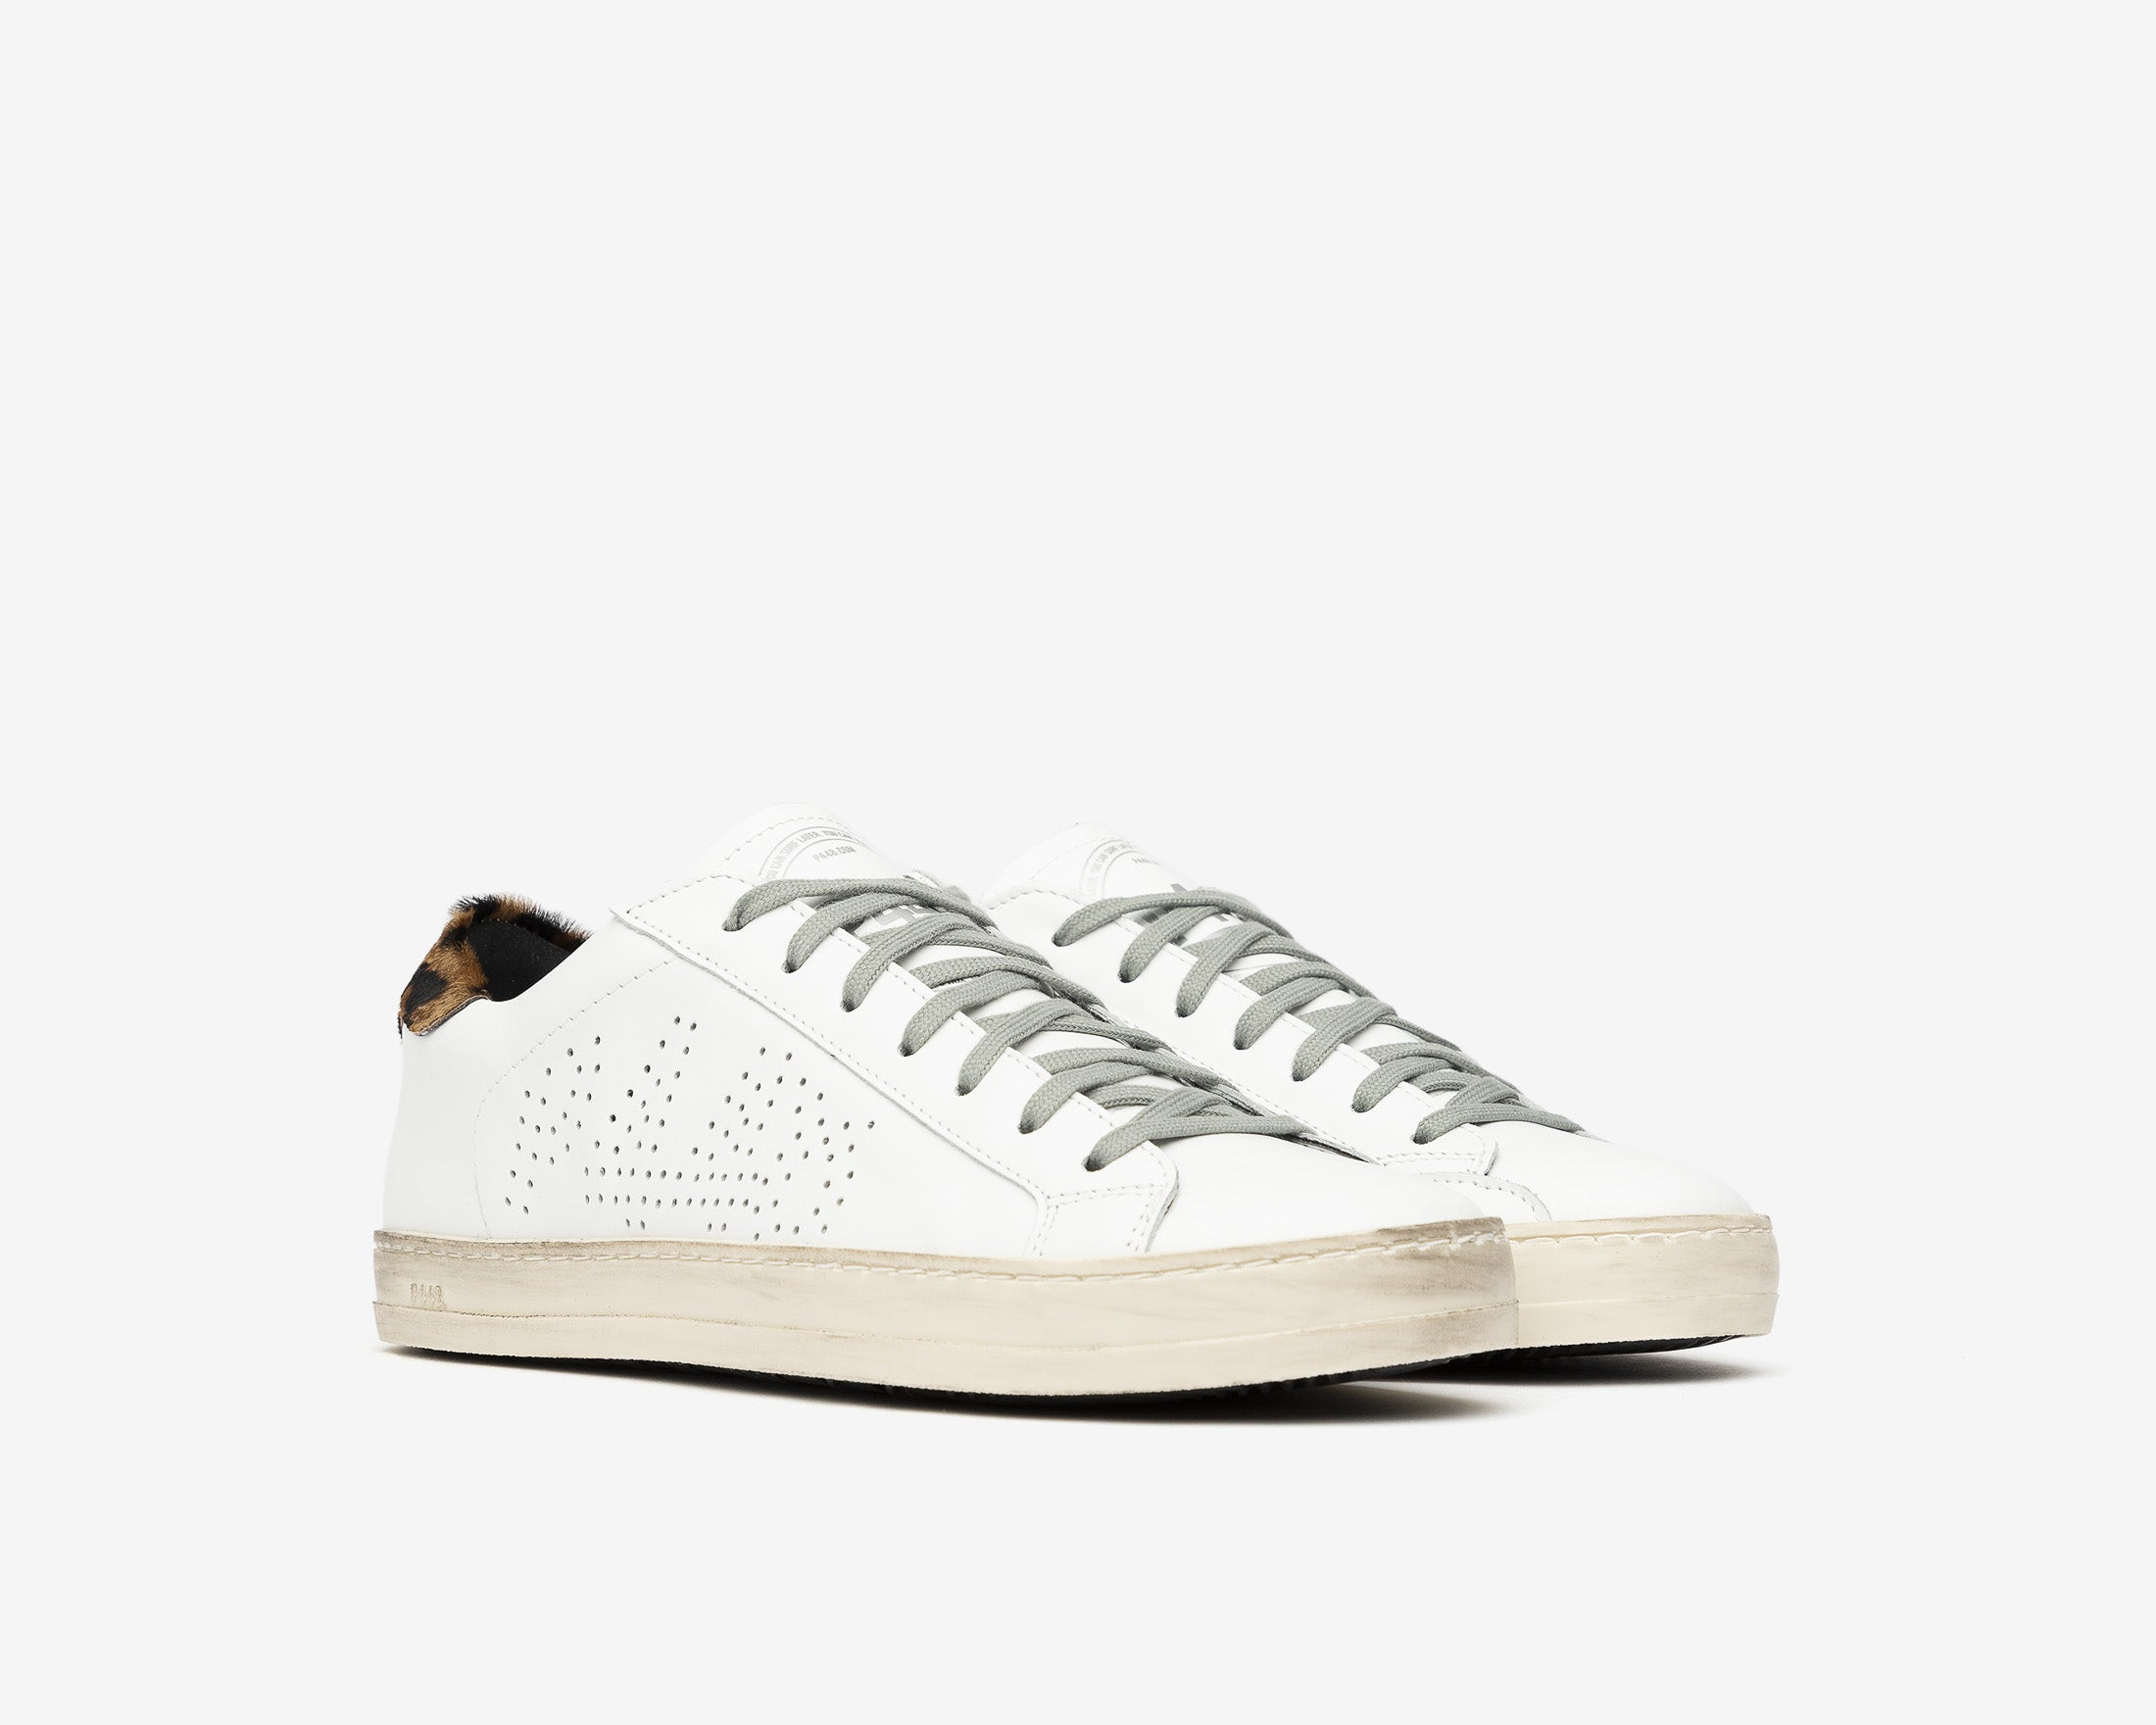 John Low-Top Sneaker in White/Cleo - Side